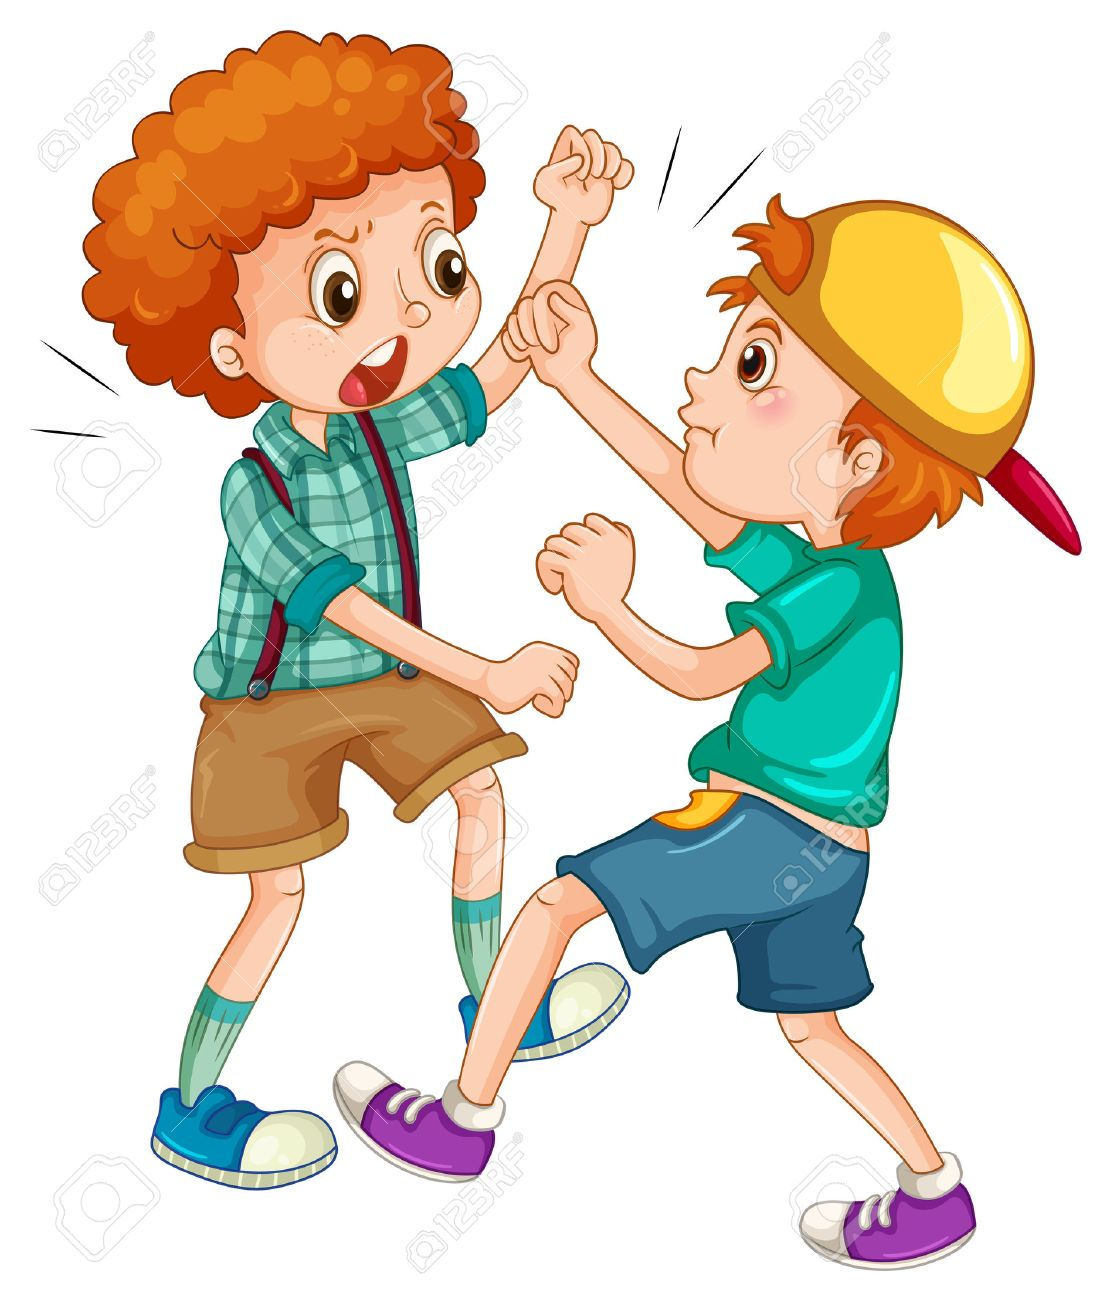 Two boys fighting each other illustration.